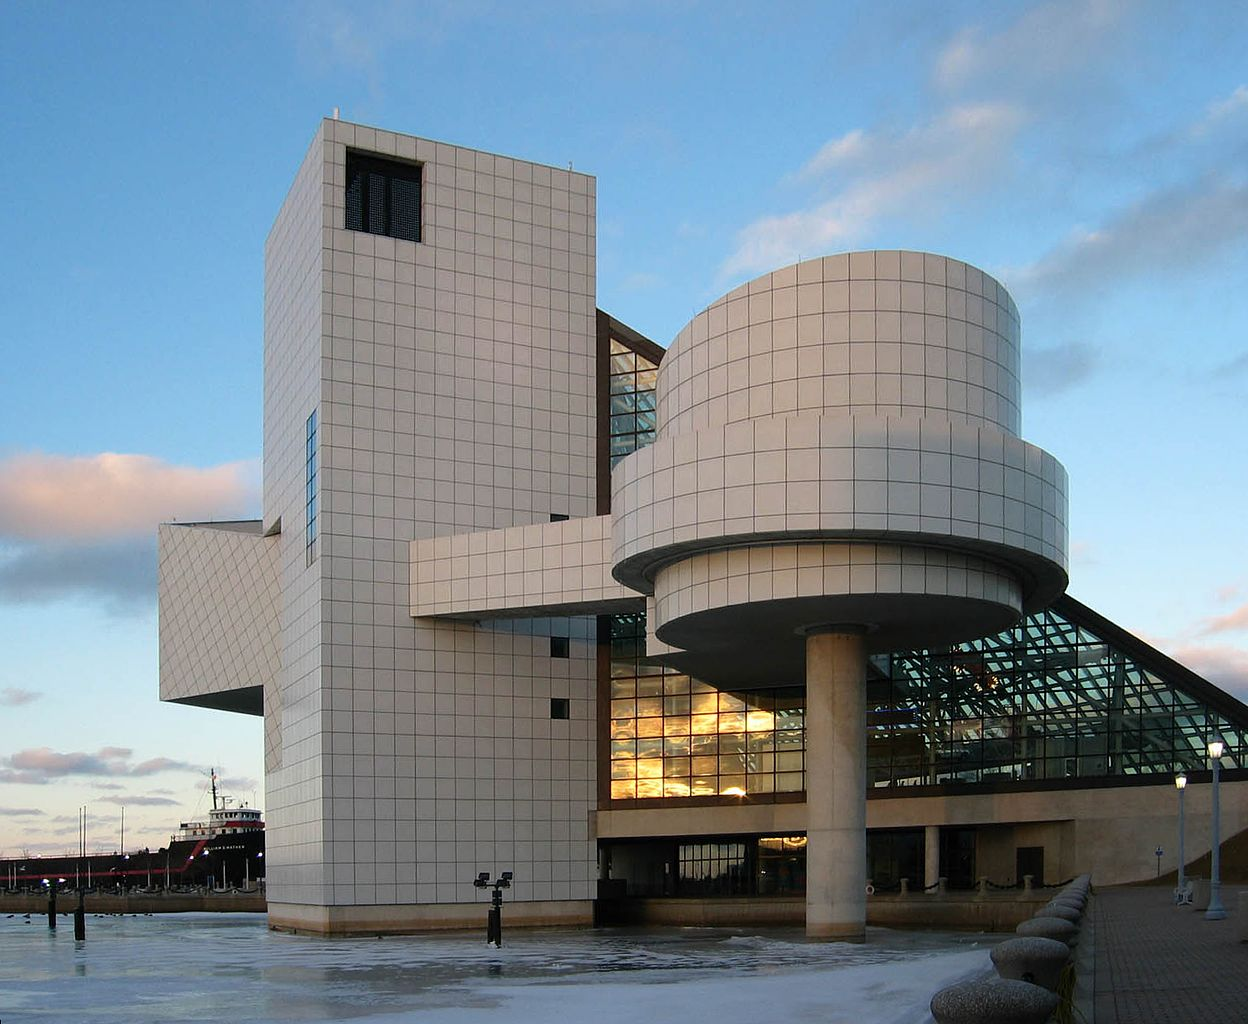 Amazing Sight-Seeing Destinations in Ohio-Rock & Roll Hall of Fame